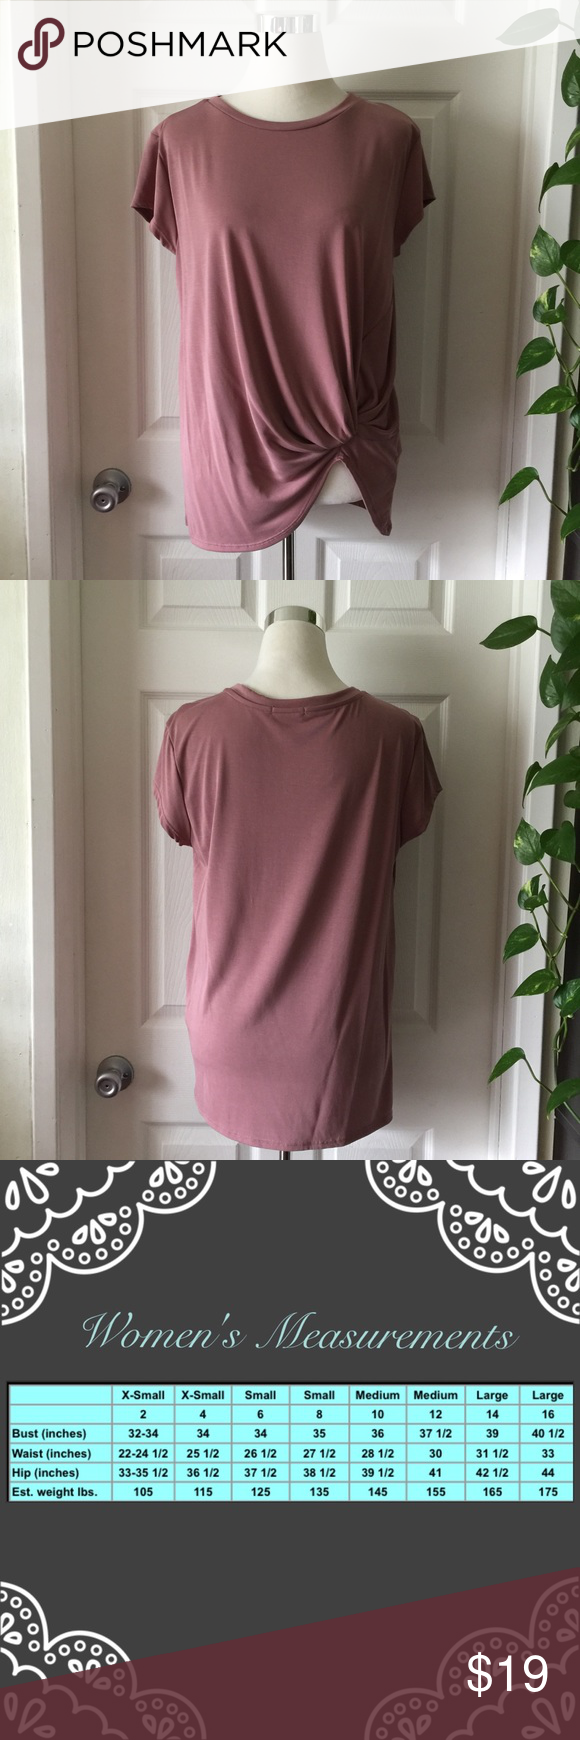 Short Sleeve W/Gathering Detail  Modal Top Short Sleeve W/Gathering Detail  Modal Top  🔸73%Modal 27%Polyester 🔸Made in USA  ✔️Serious buyers please & No Low ballers!  To me it's asking half or more off an item is Low Balling.   ✔️Please understand the sizes listed on the size chart are different between manufacturers & suppliers & this chart should only be used as an approximate guide. Amor Adore  Tops